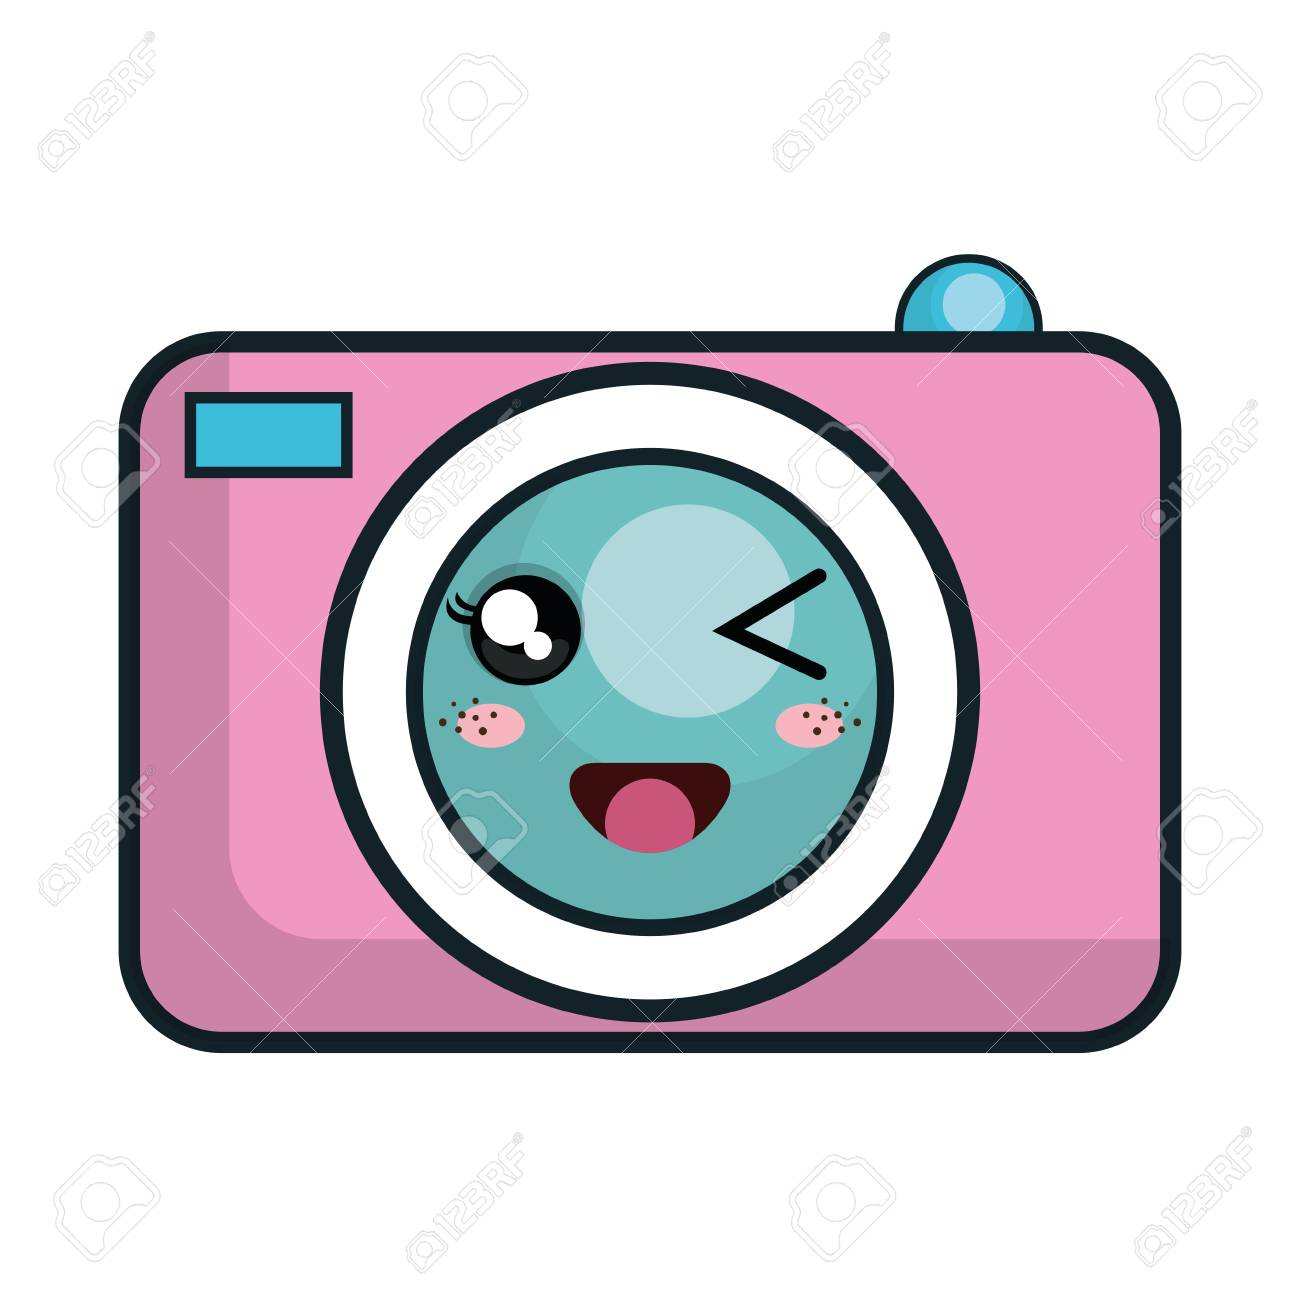 Pink Cartoon Photographic Cute Camera Vector Illustration